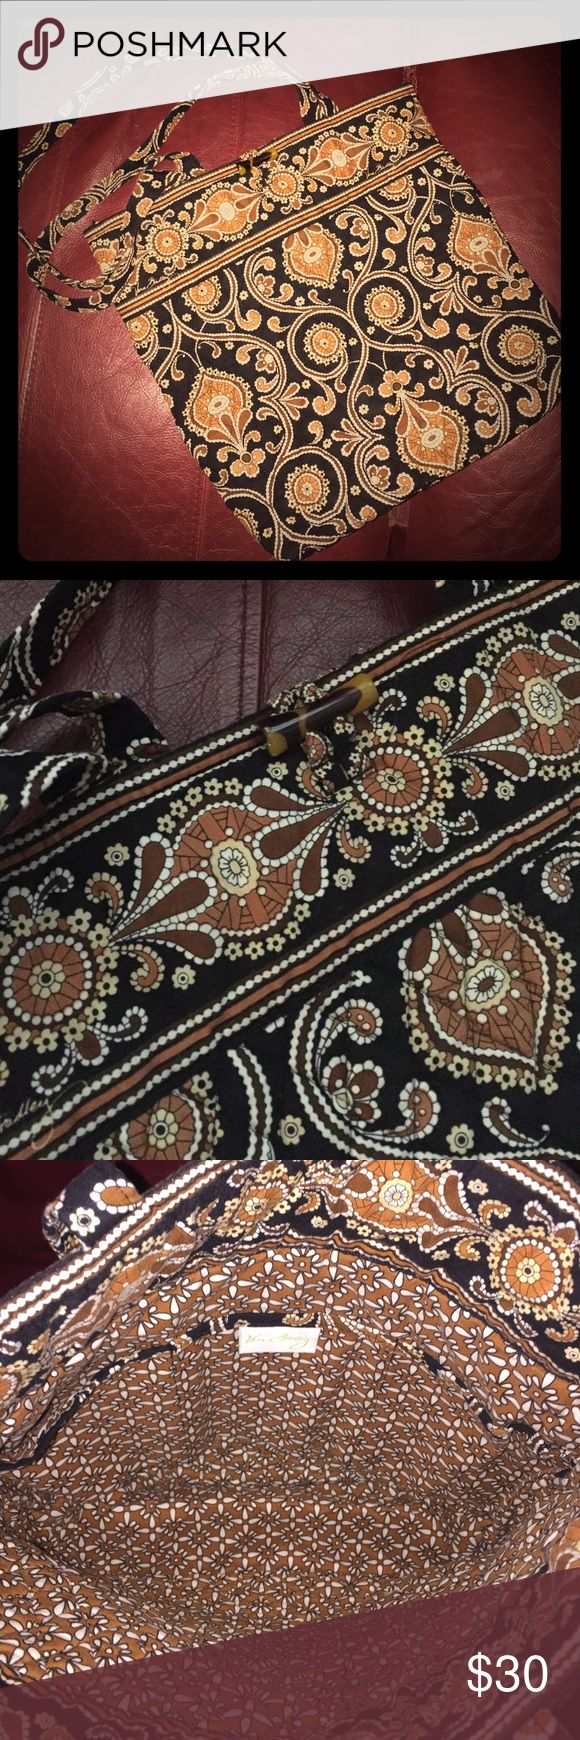 Vera Bradley Caffe Latte Toggle Tote Very gently used! Clean, smoke & pet free home! This bag looks as good as new! Vera Bradley Bags Totes